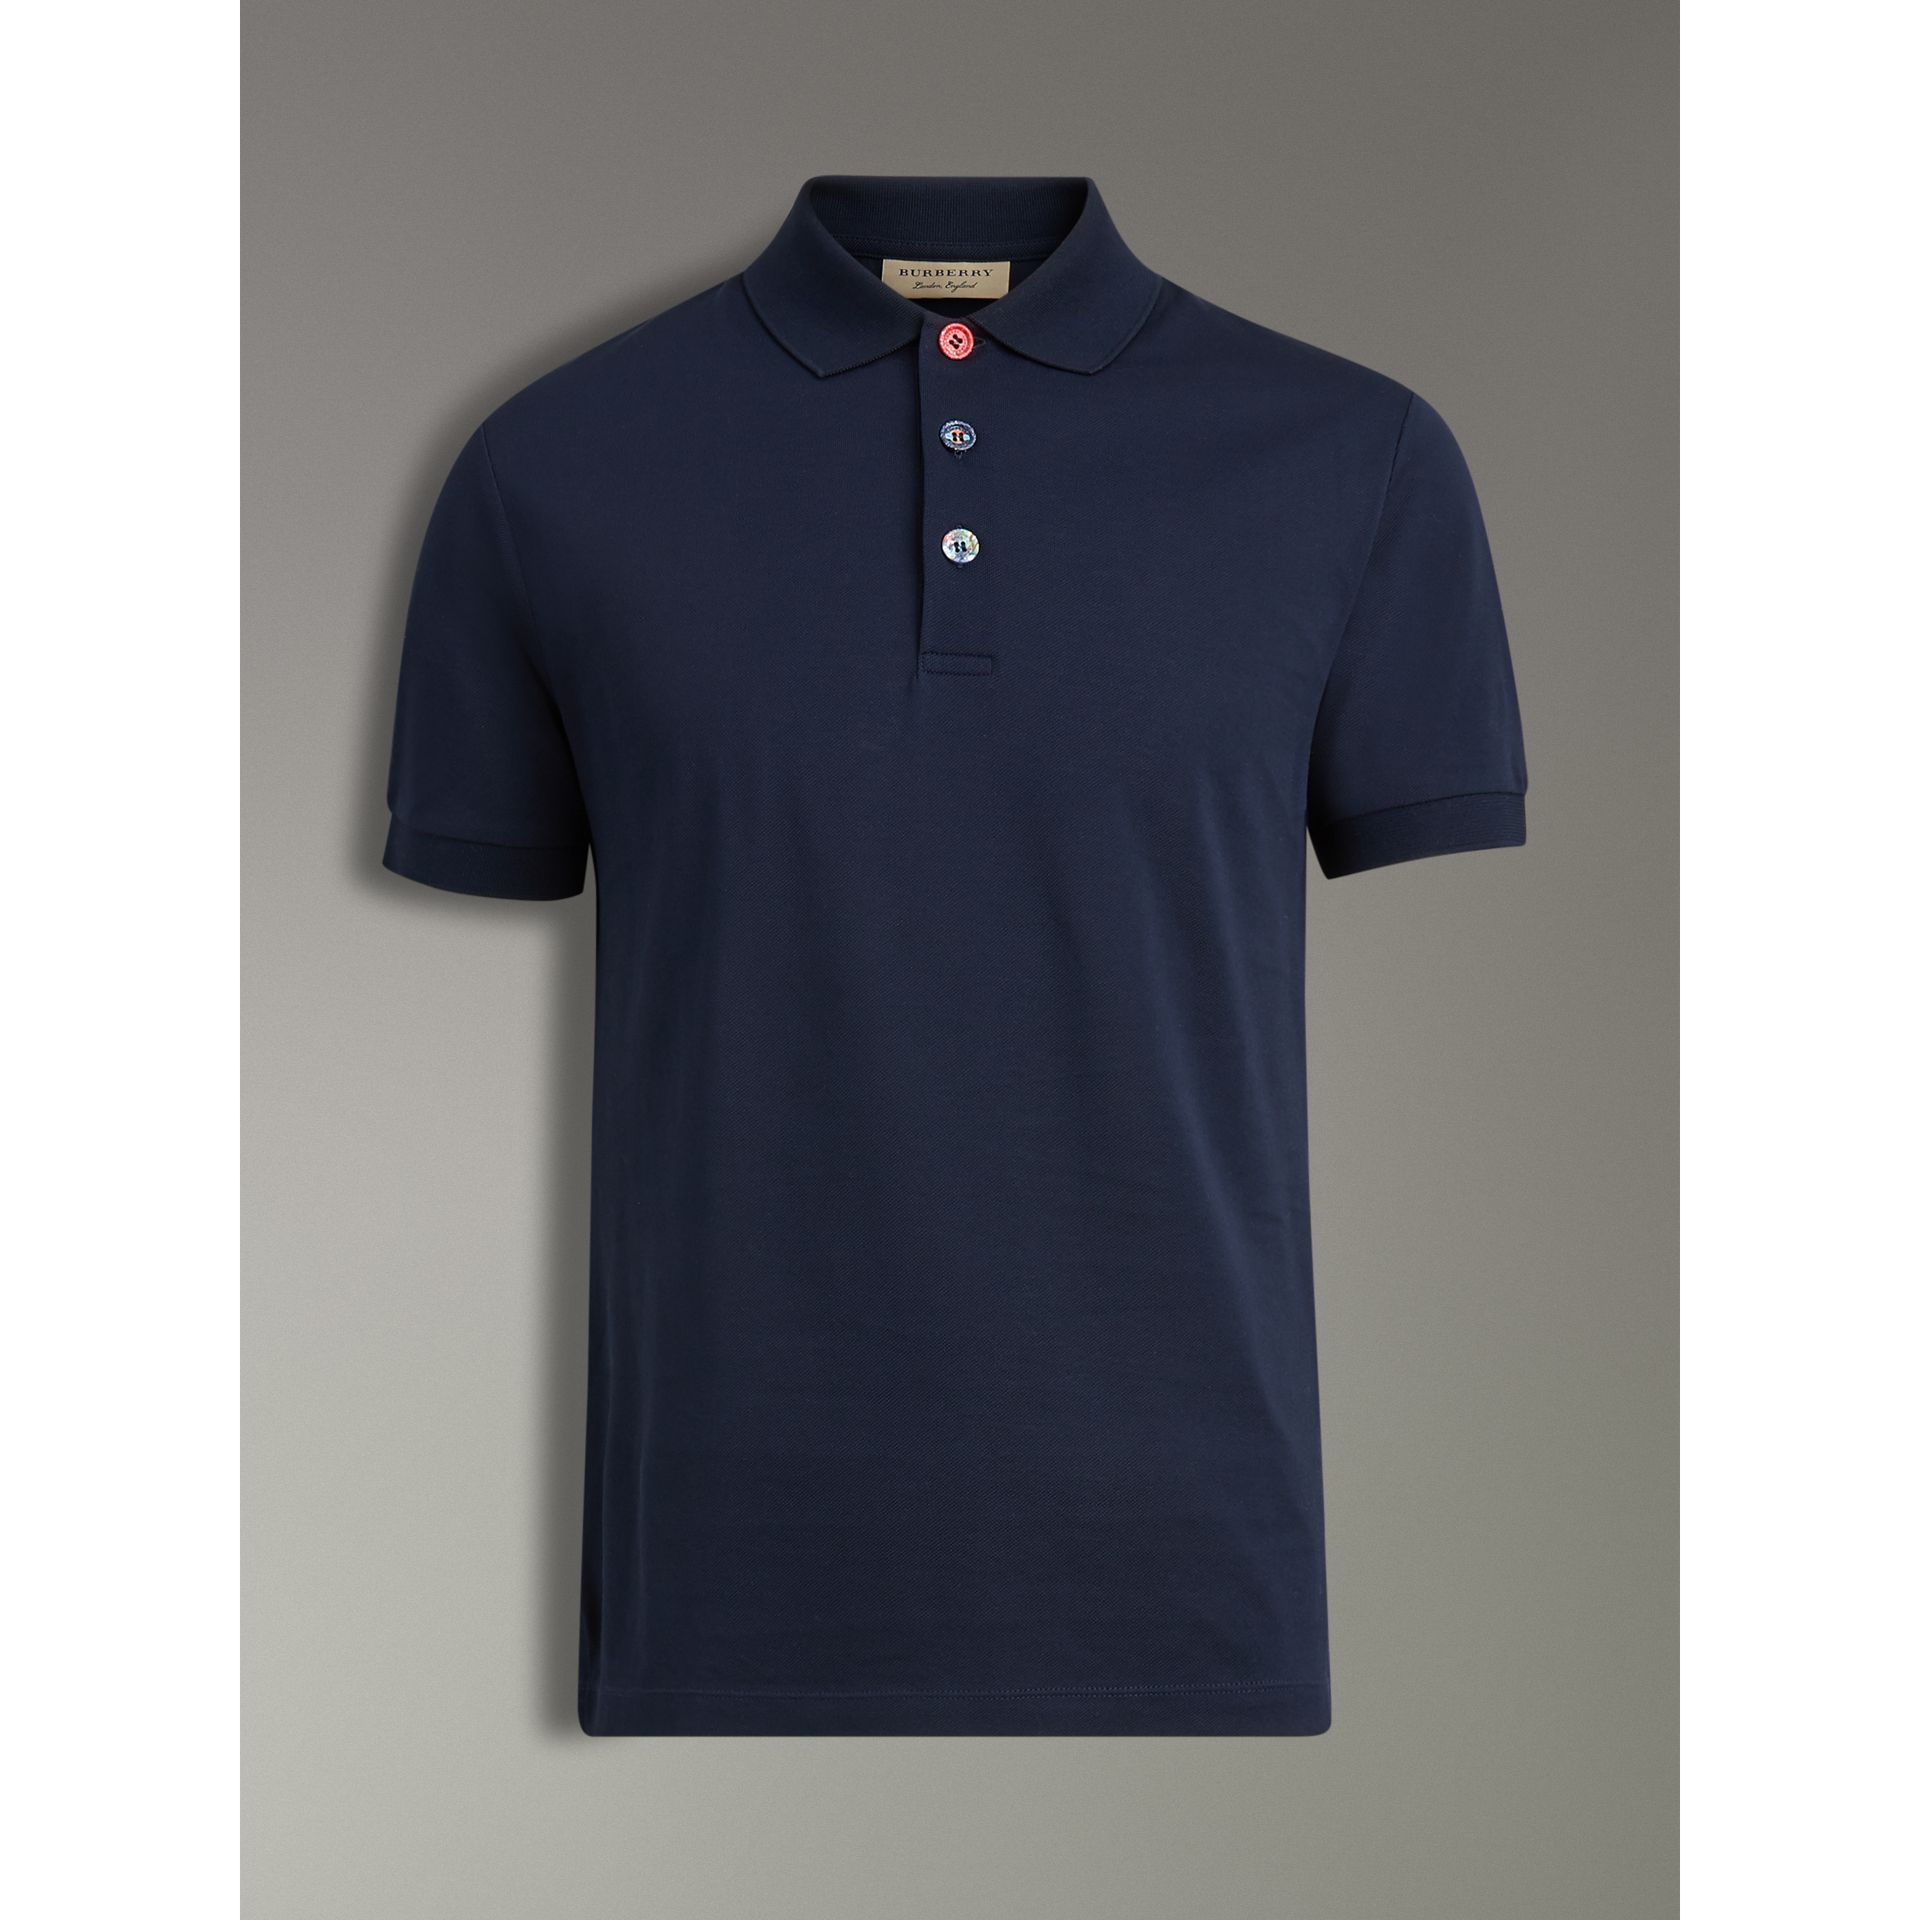 Painted Button Cotton Piqué Polo Shirt in Navy - Men | Burberry Canada - gallery image 3